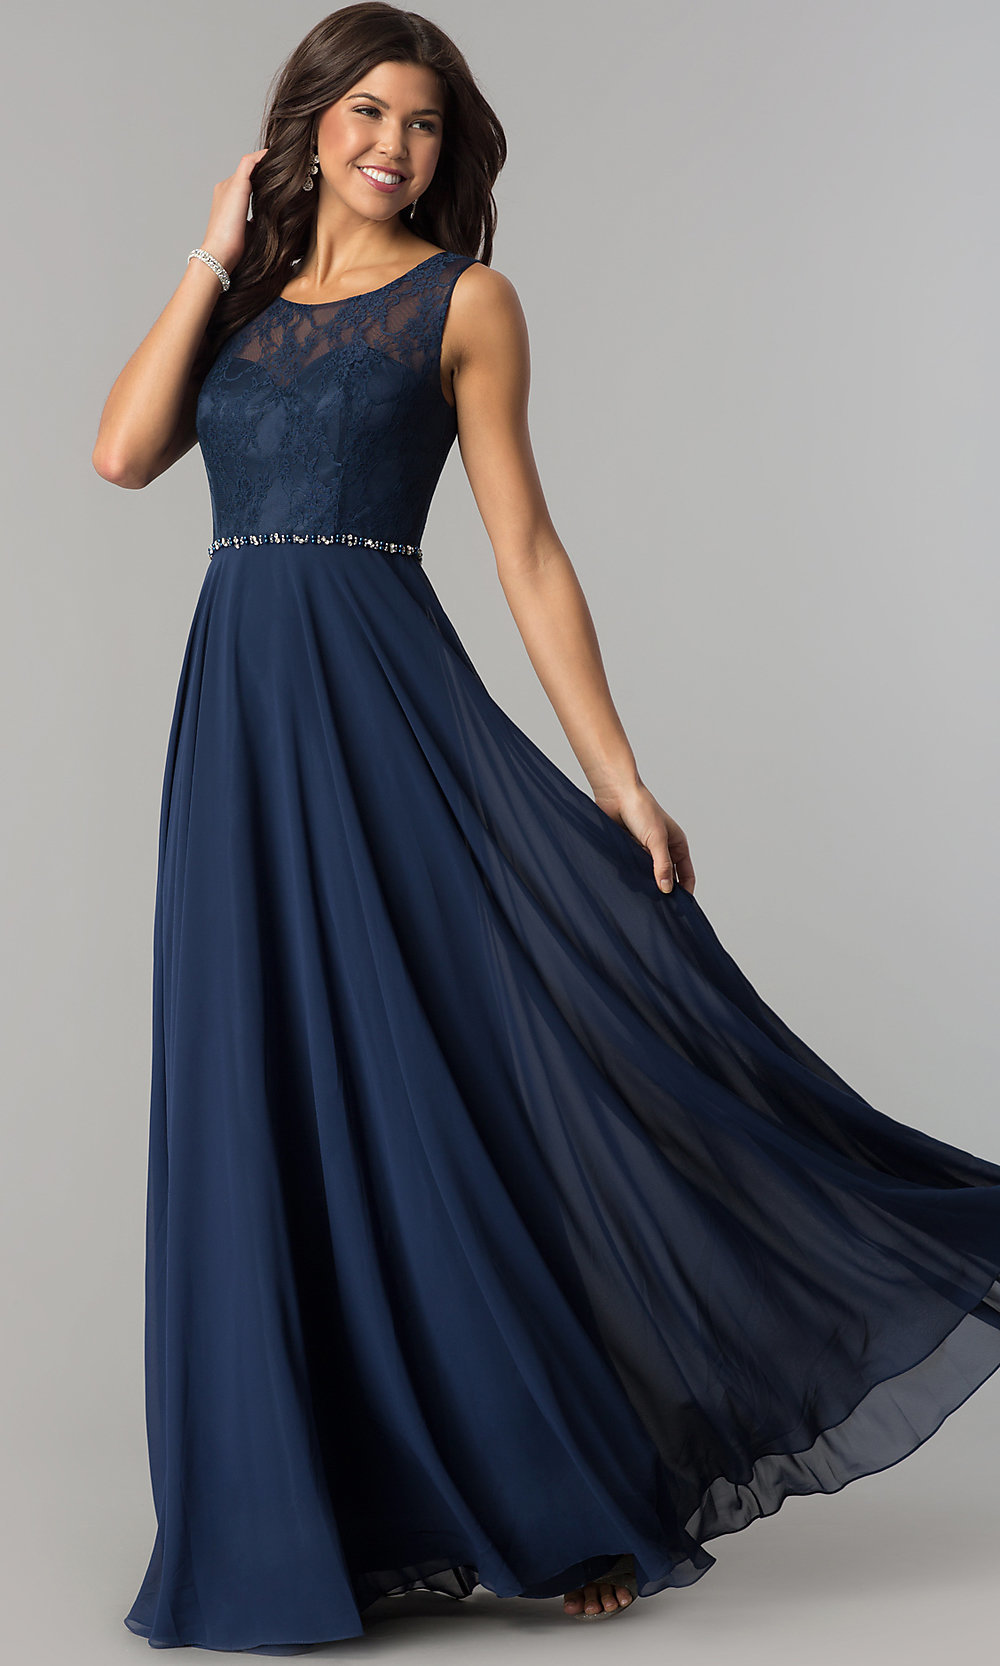 Image of lace-bodice long chiffon illusion-neck prom dress. Style  DQ. Tap  to expand 1ffbd8534